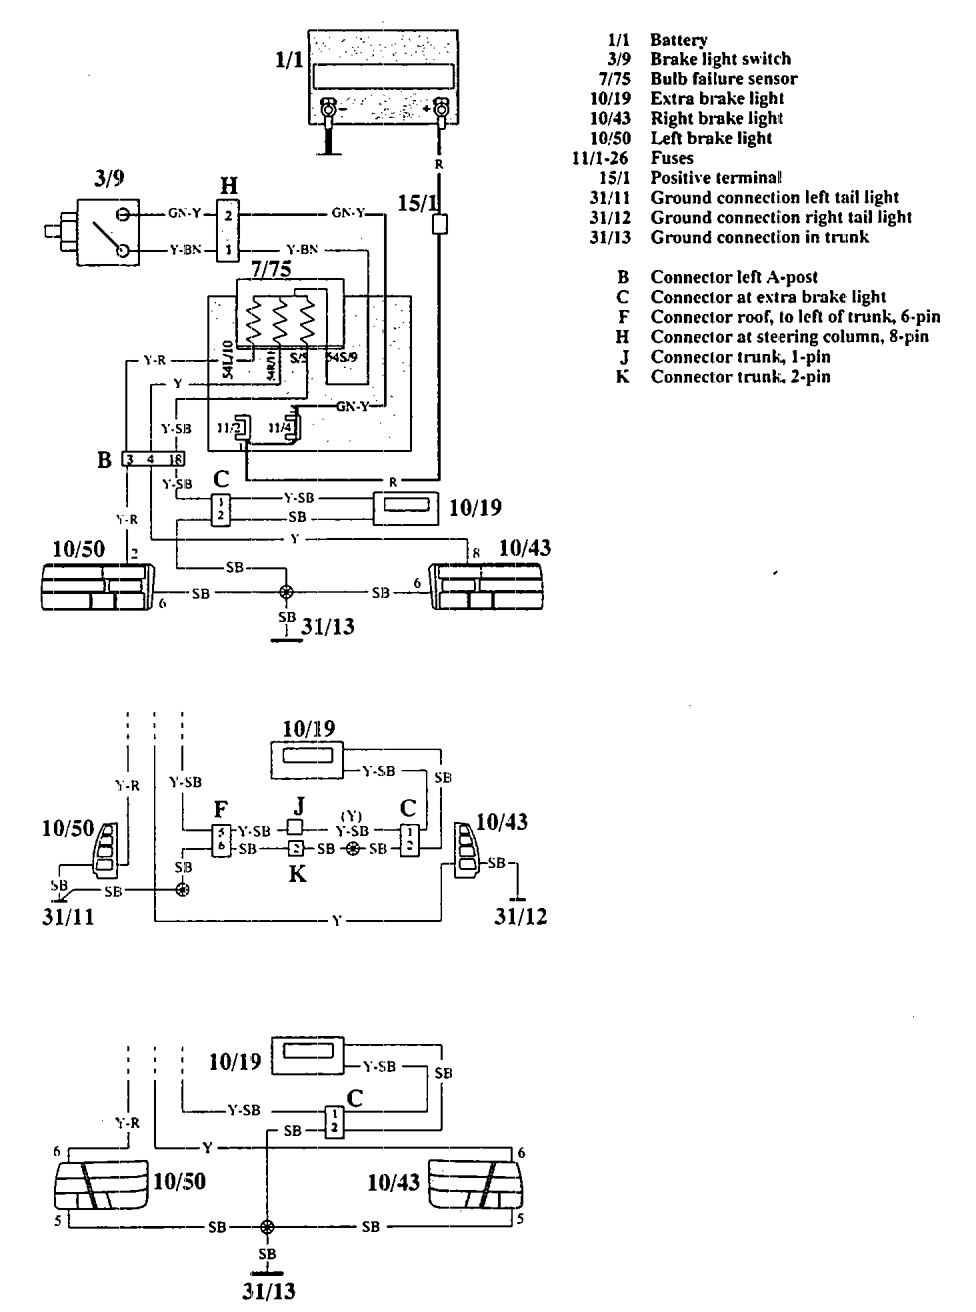 cool volvo 740 stereo wiring diagram pictures inspiration 1994 volvo 940 radio wiring diagram nice volvo 740 stereo wiring diagram ideas electrical and wiring Toyota Tercel Radio Wiring Diagram